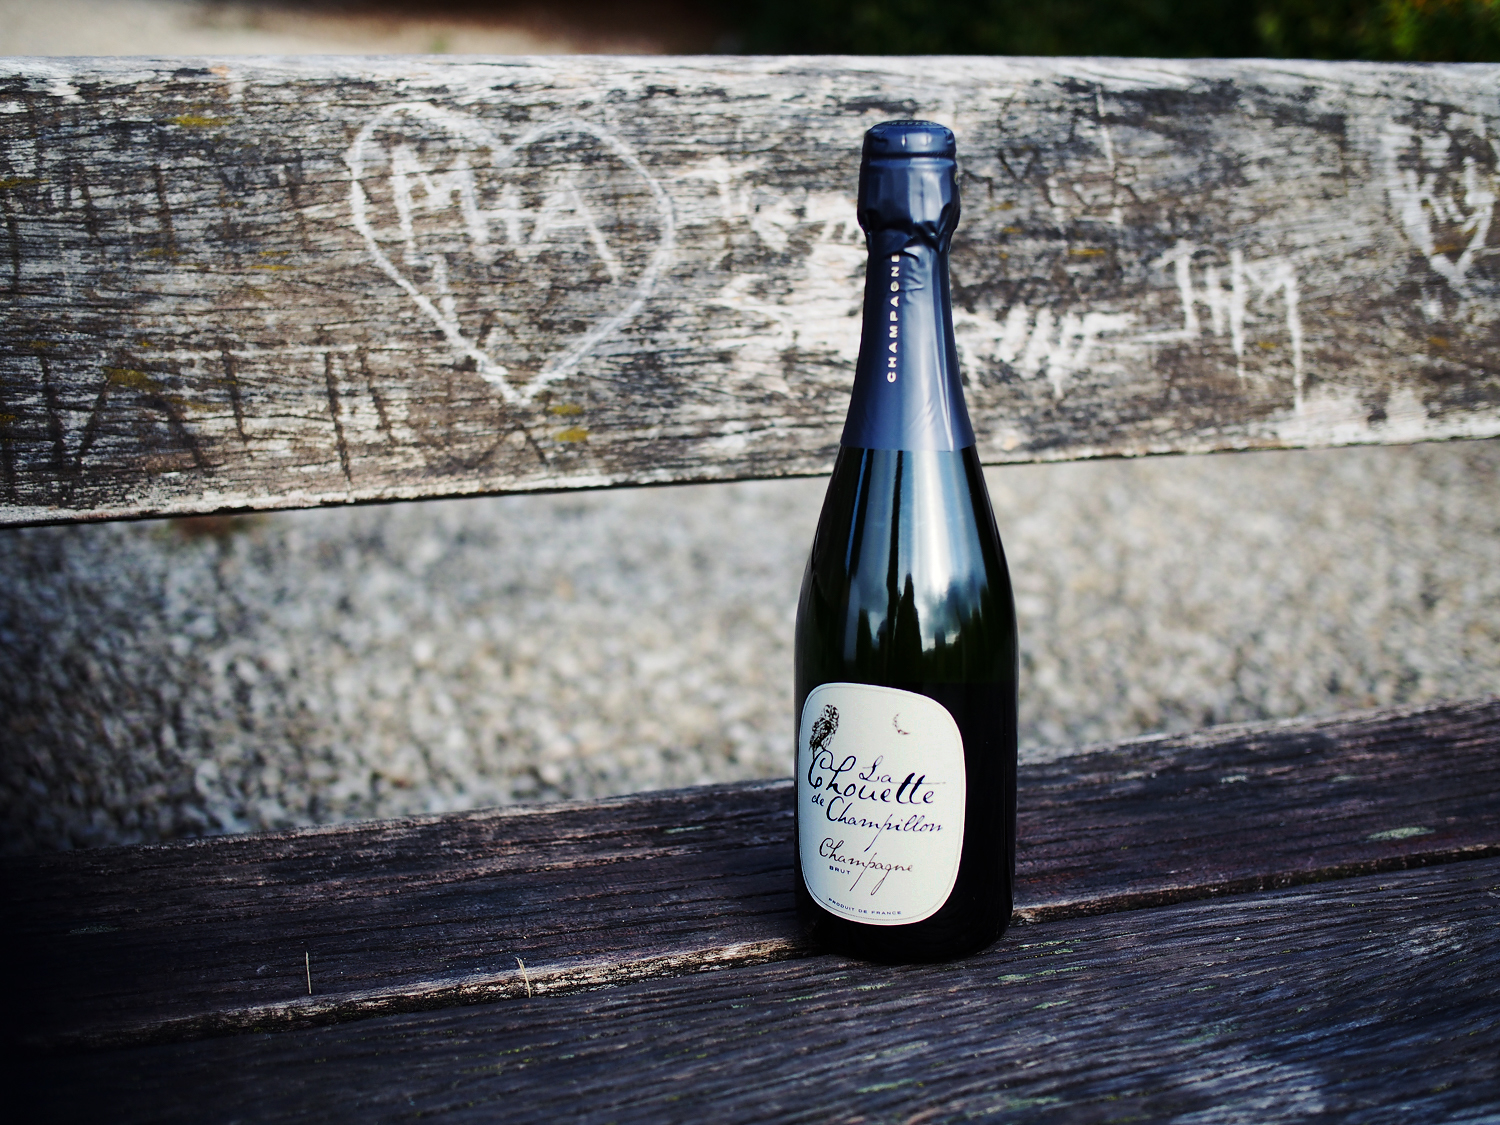 champagnechouette-33-of-50.jpg